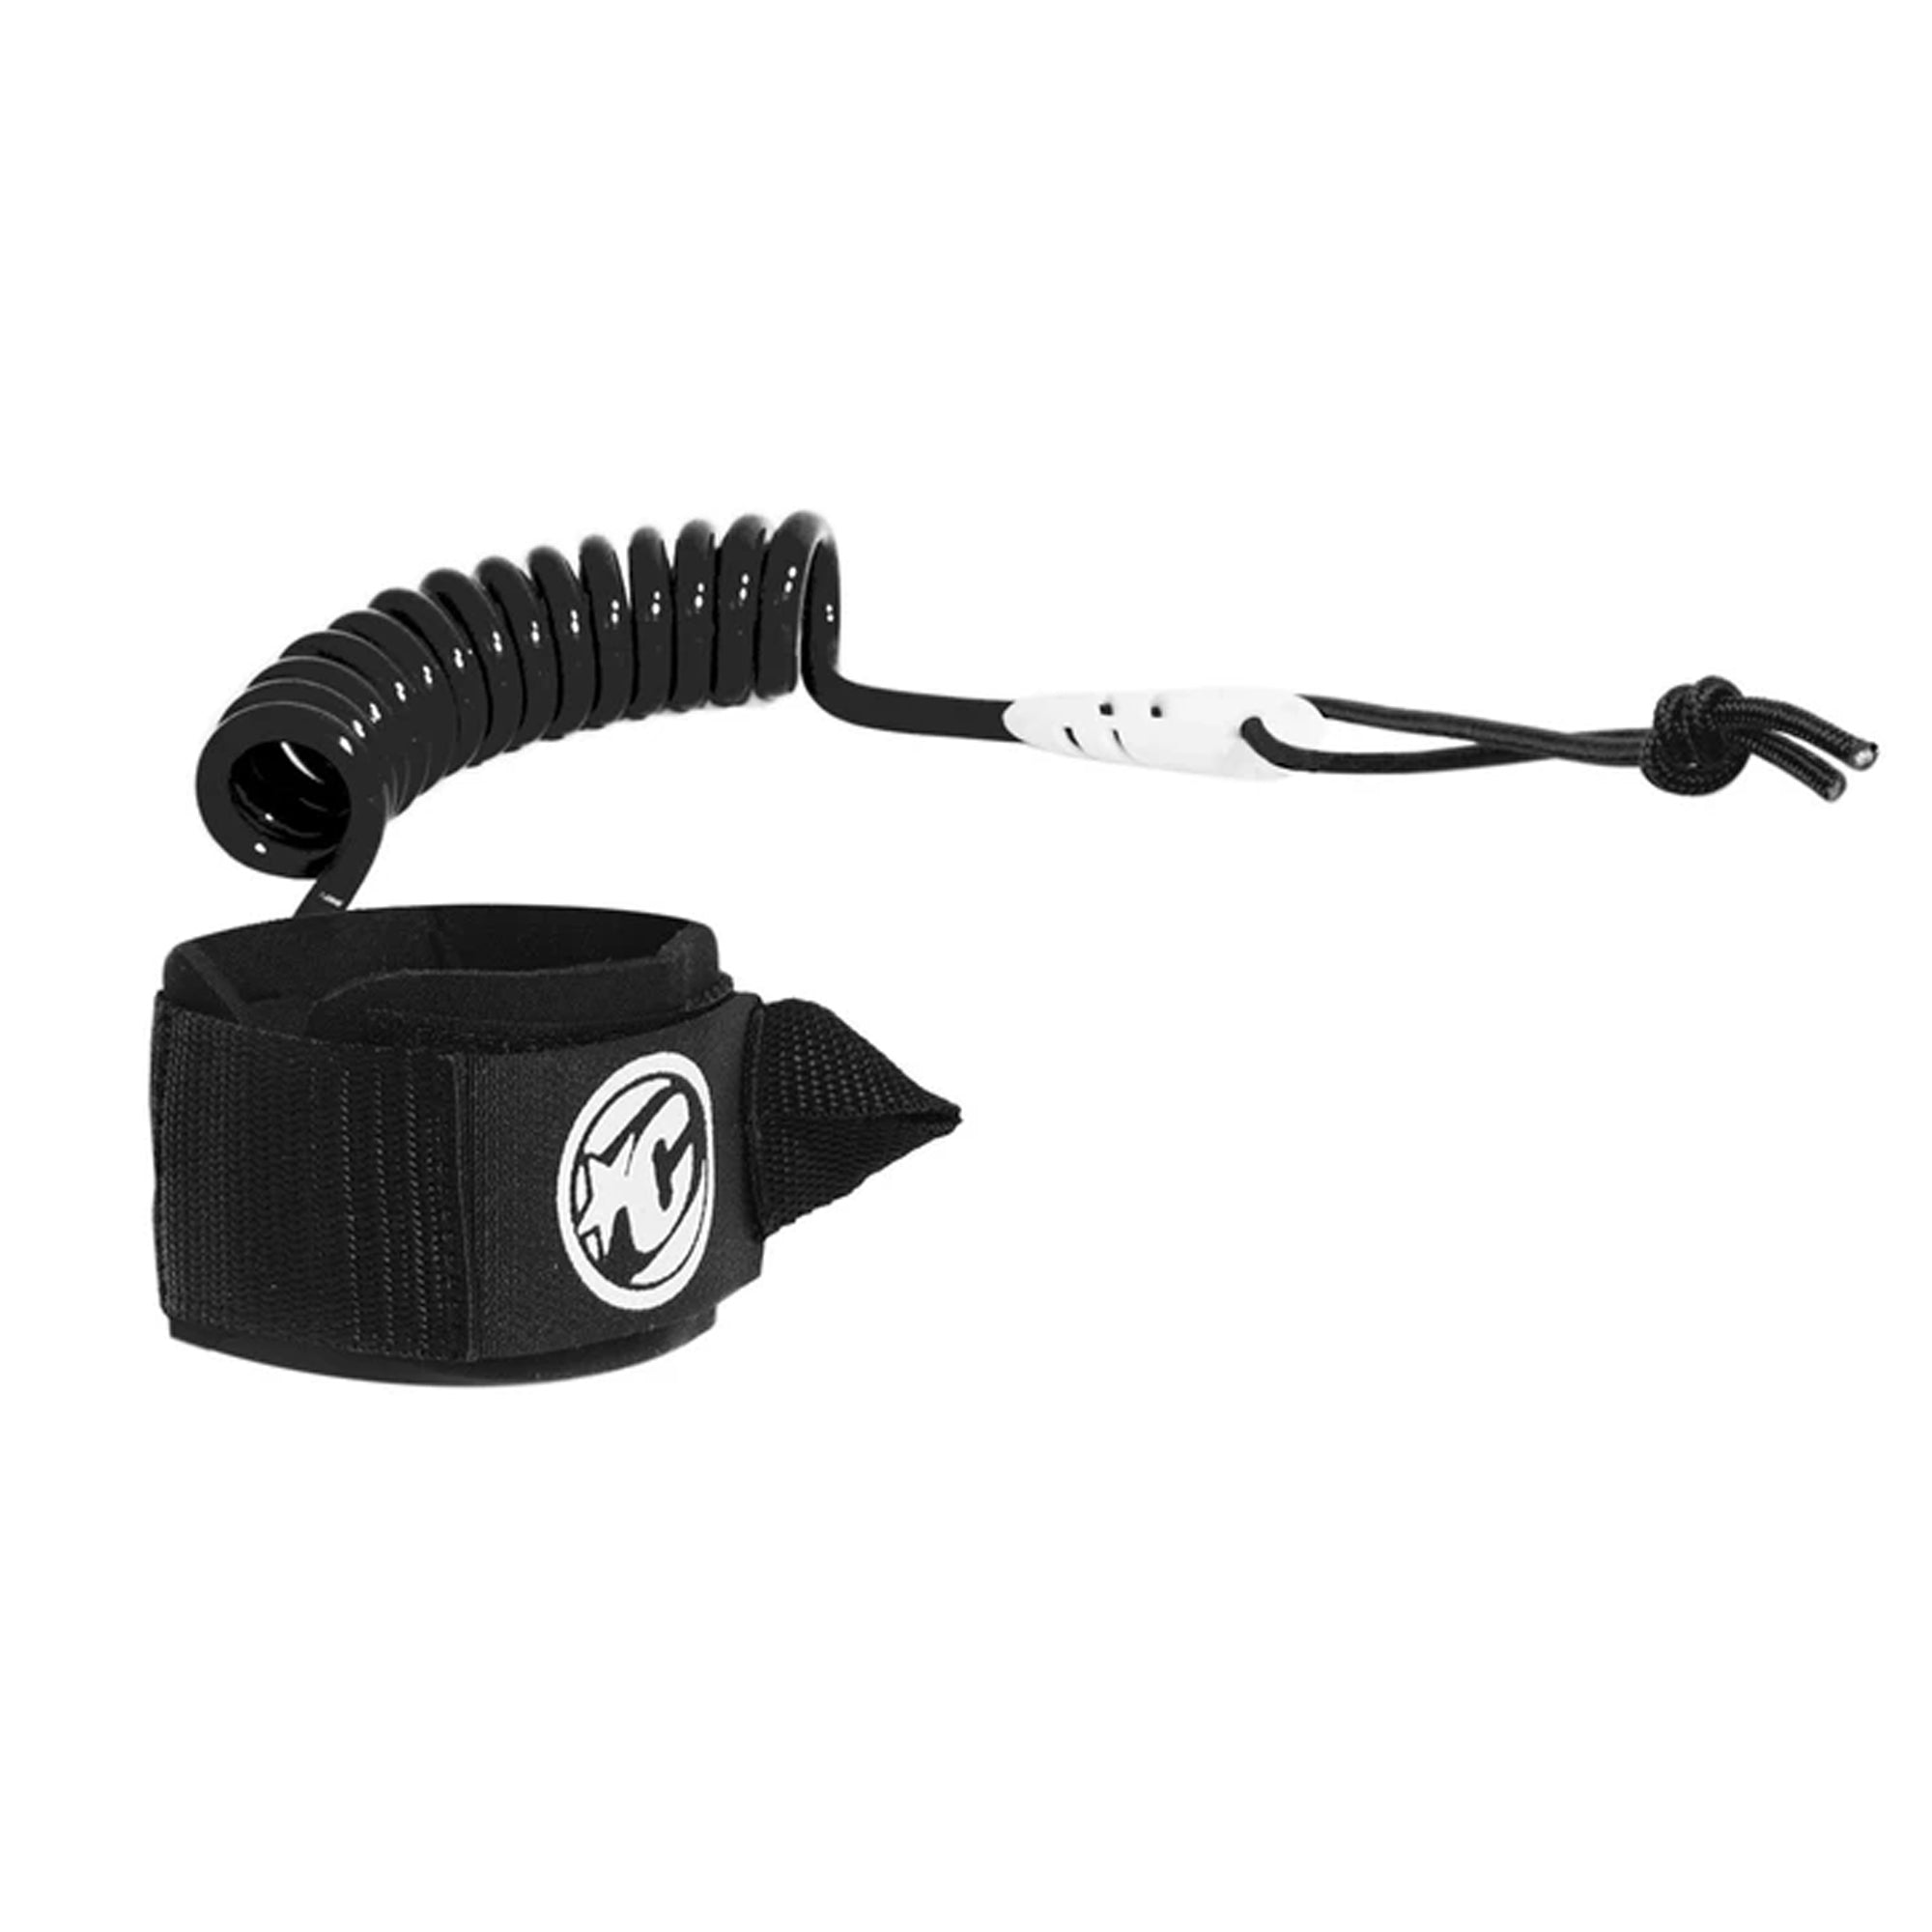 Creatures of Leisure Coiled Wrist Leash - Black